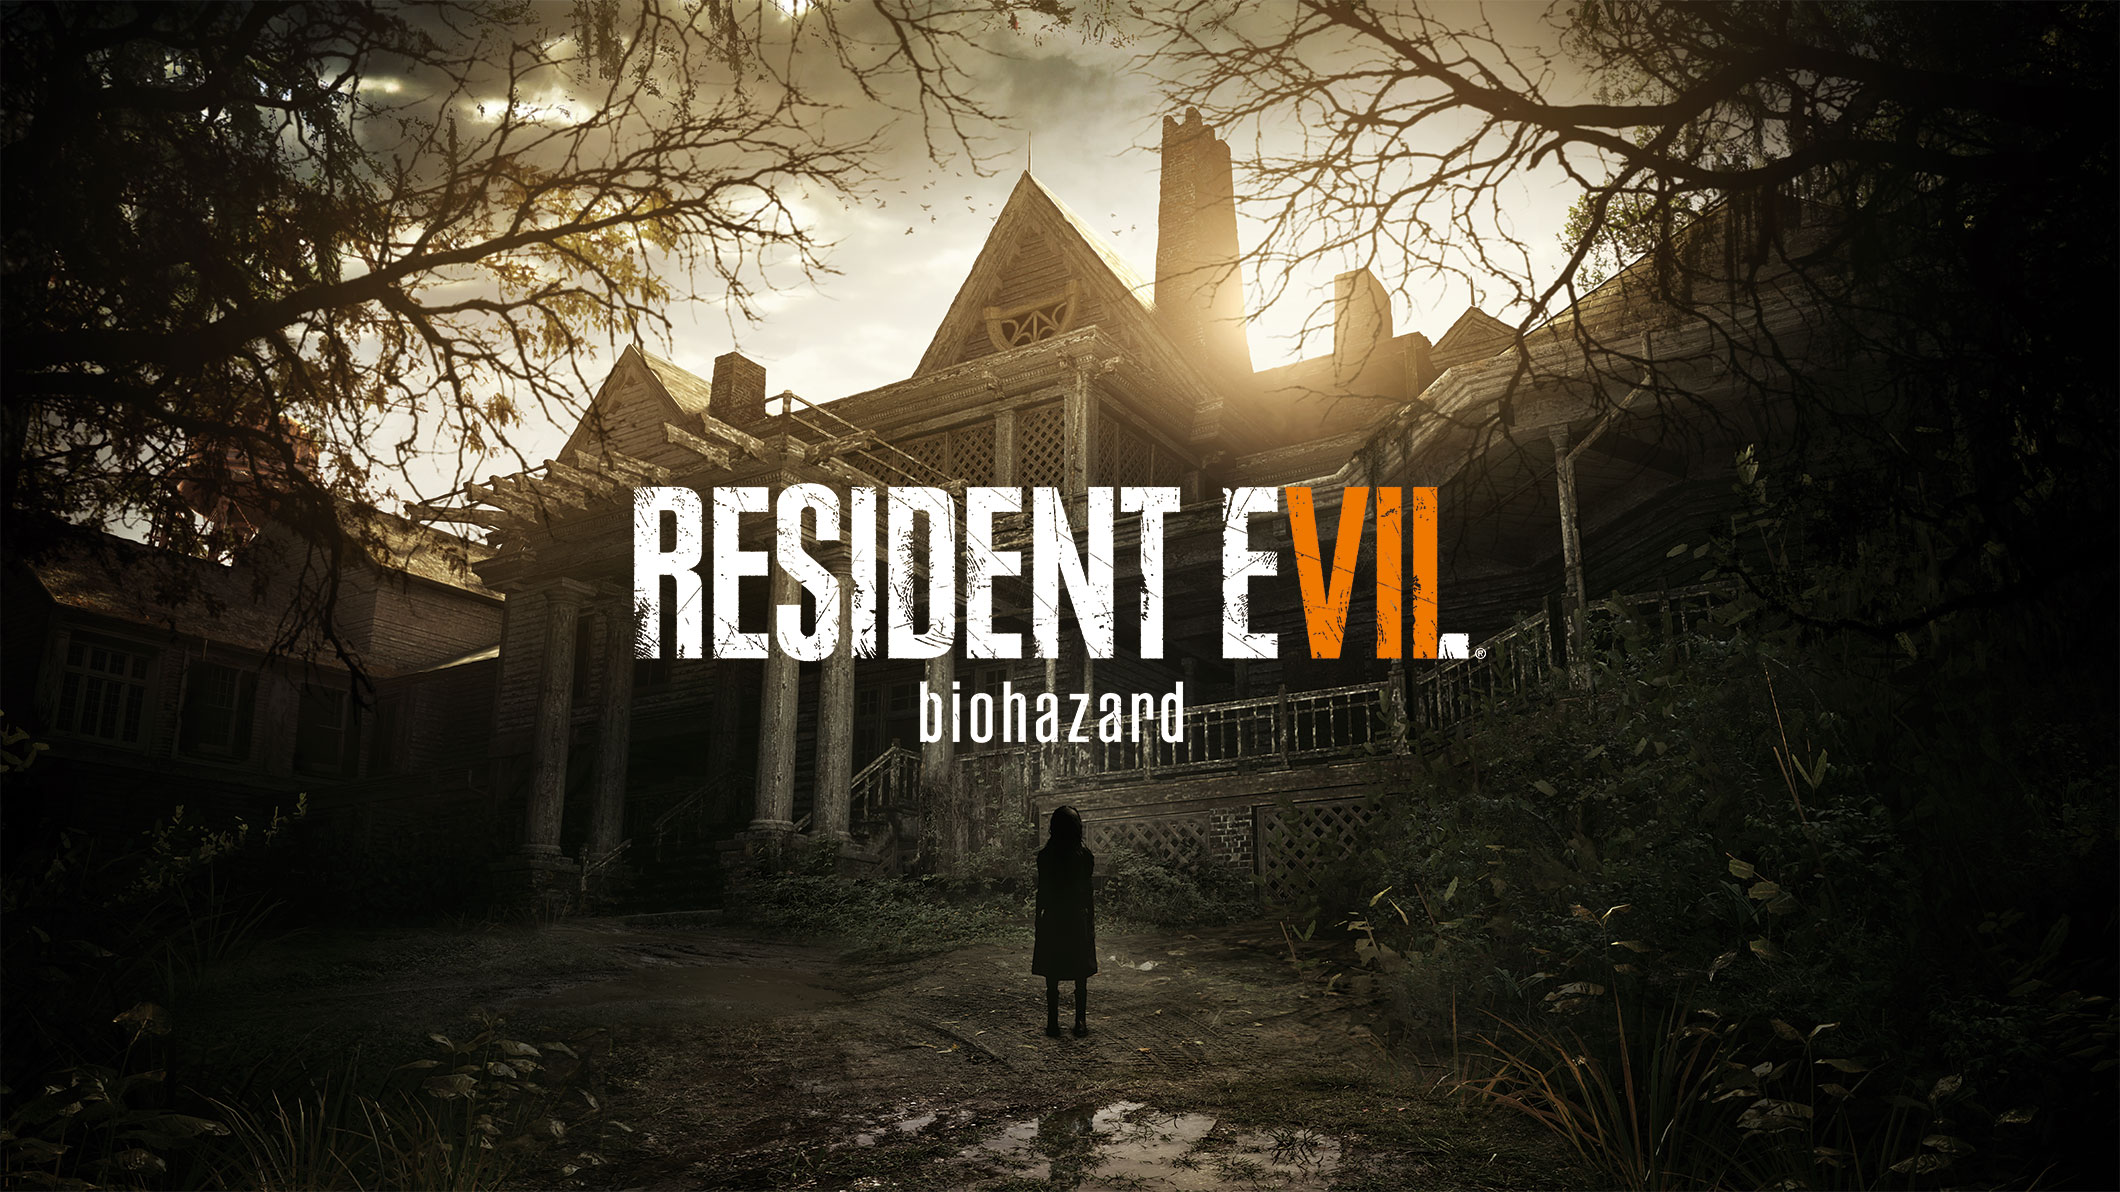 A creepy house mansion AND a creepy kid?! That's too much creepy for one game.